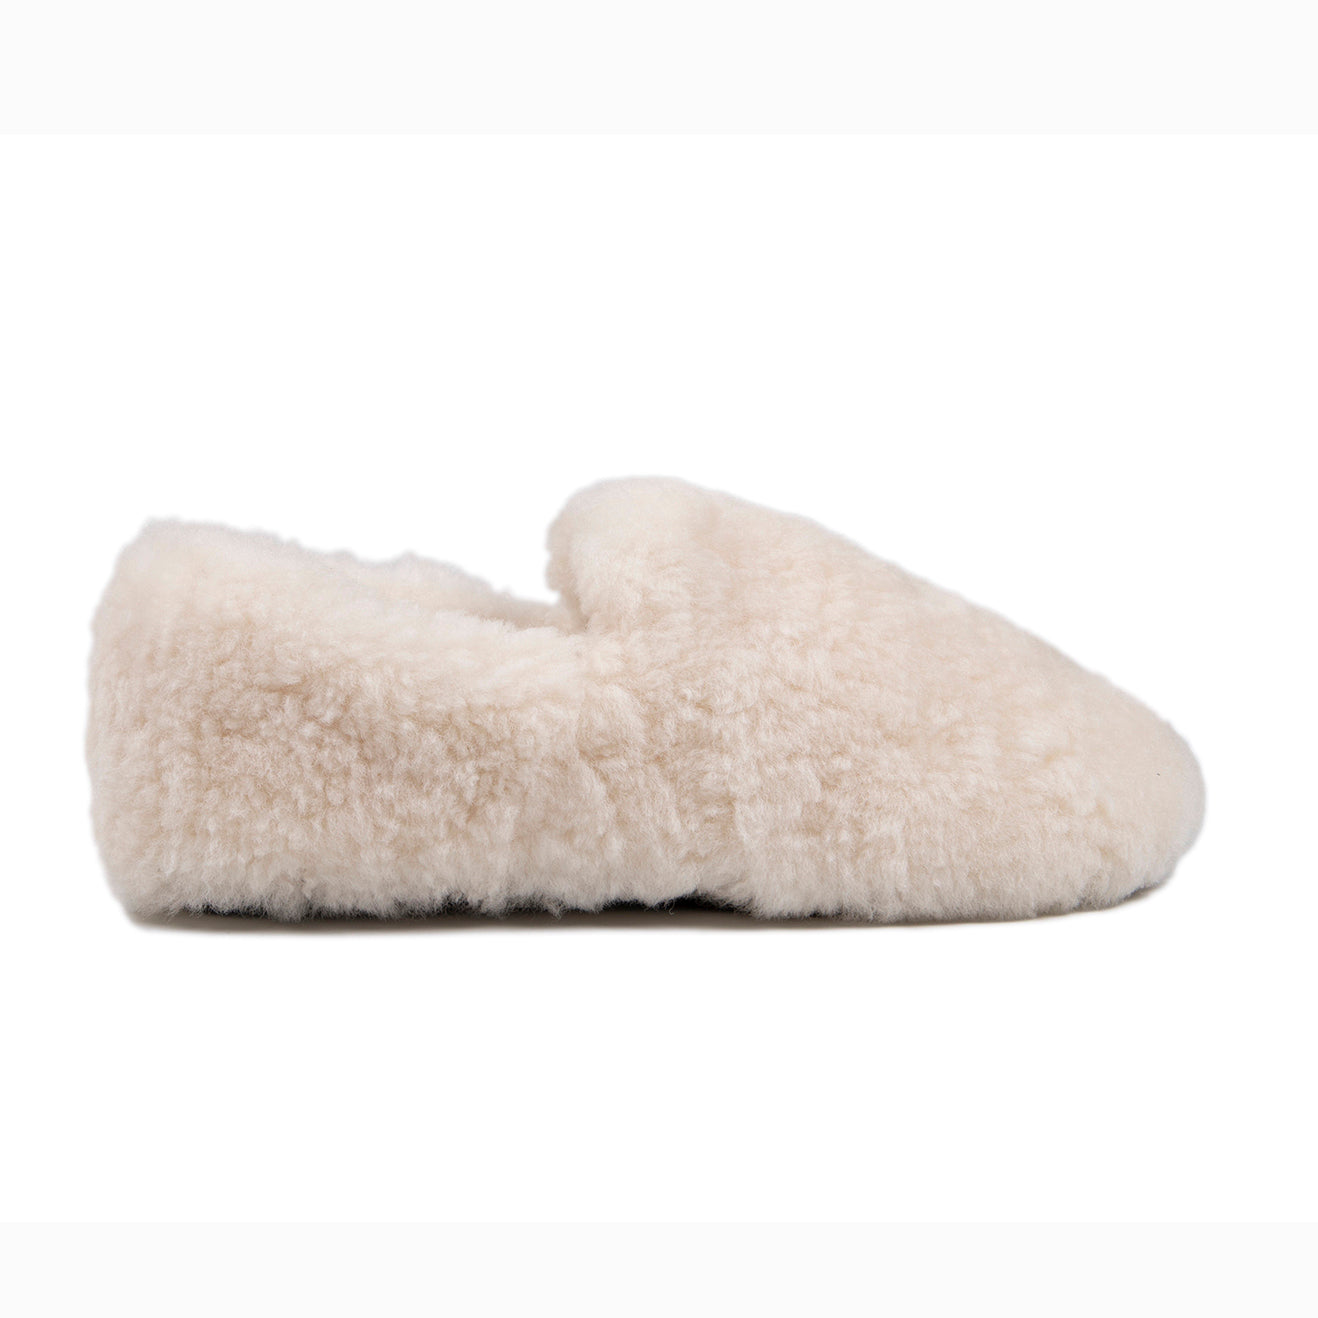 LADIES LUNA SLIPPER